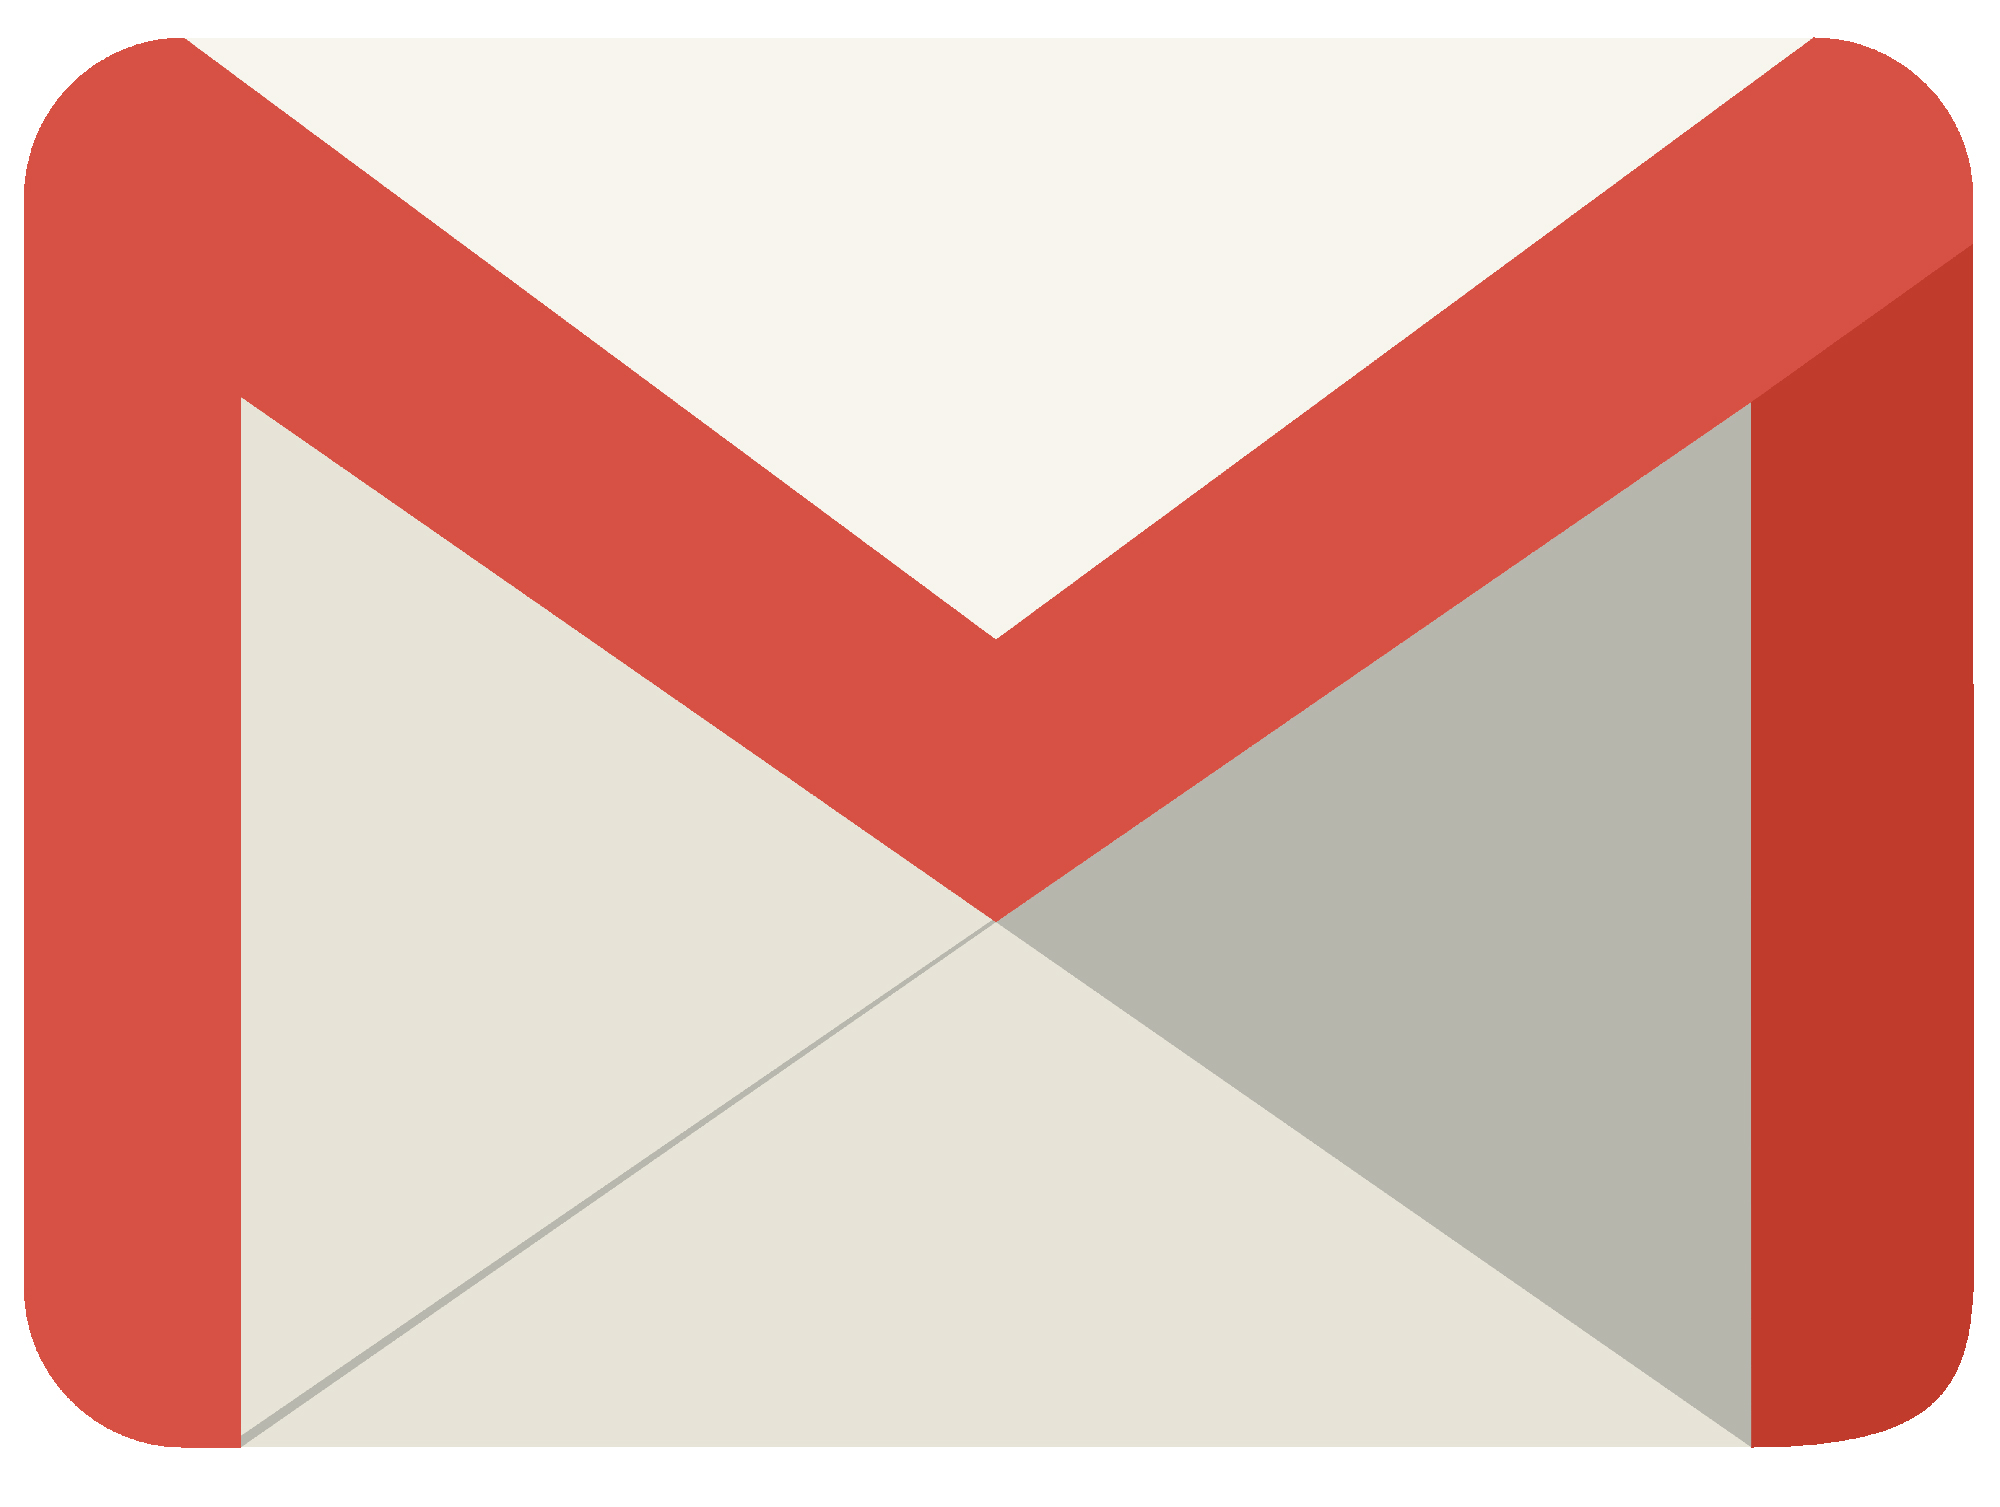 Gmail for iOS now lets you send and request money